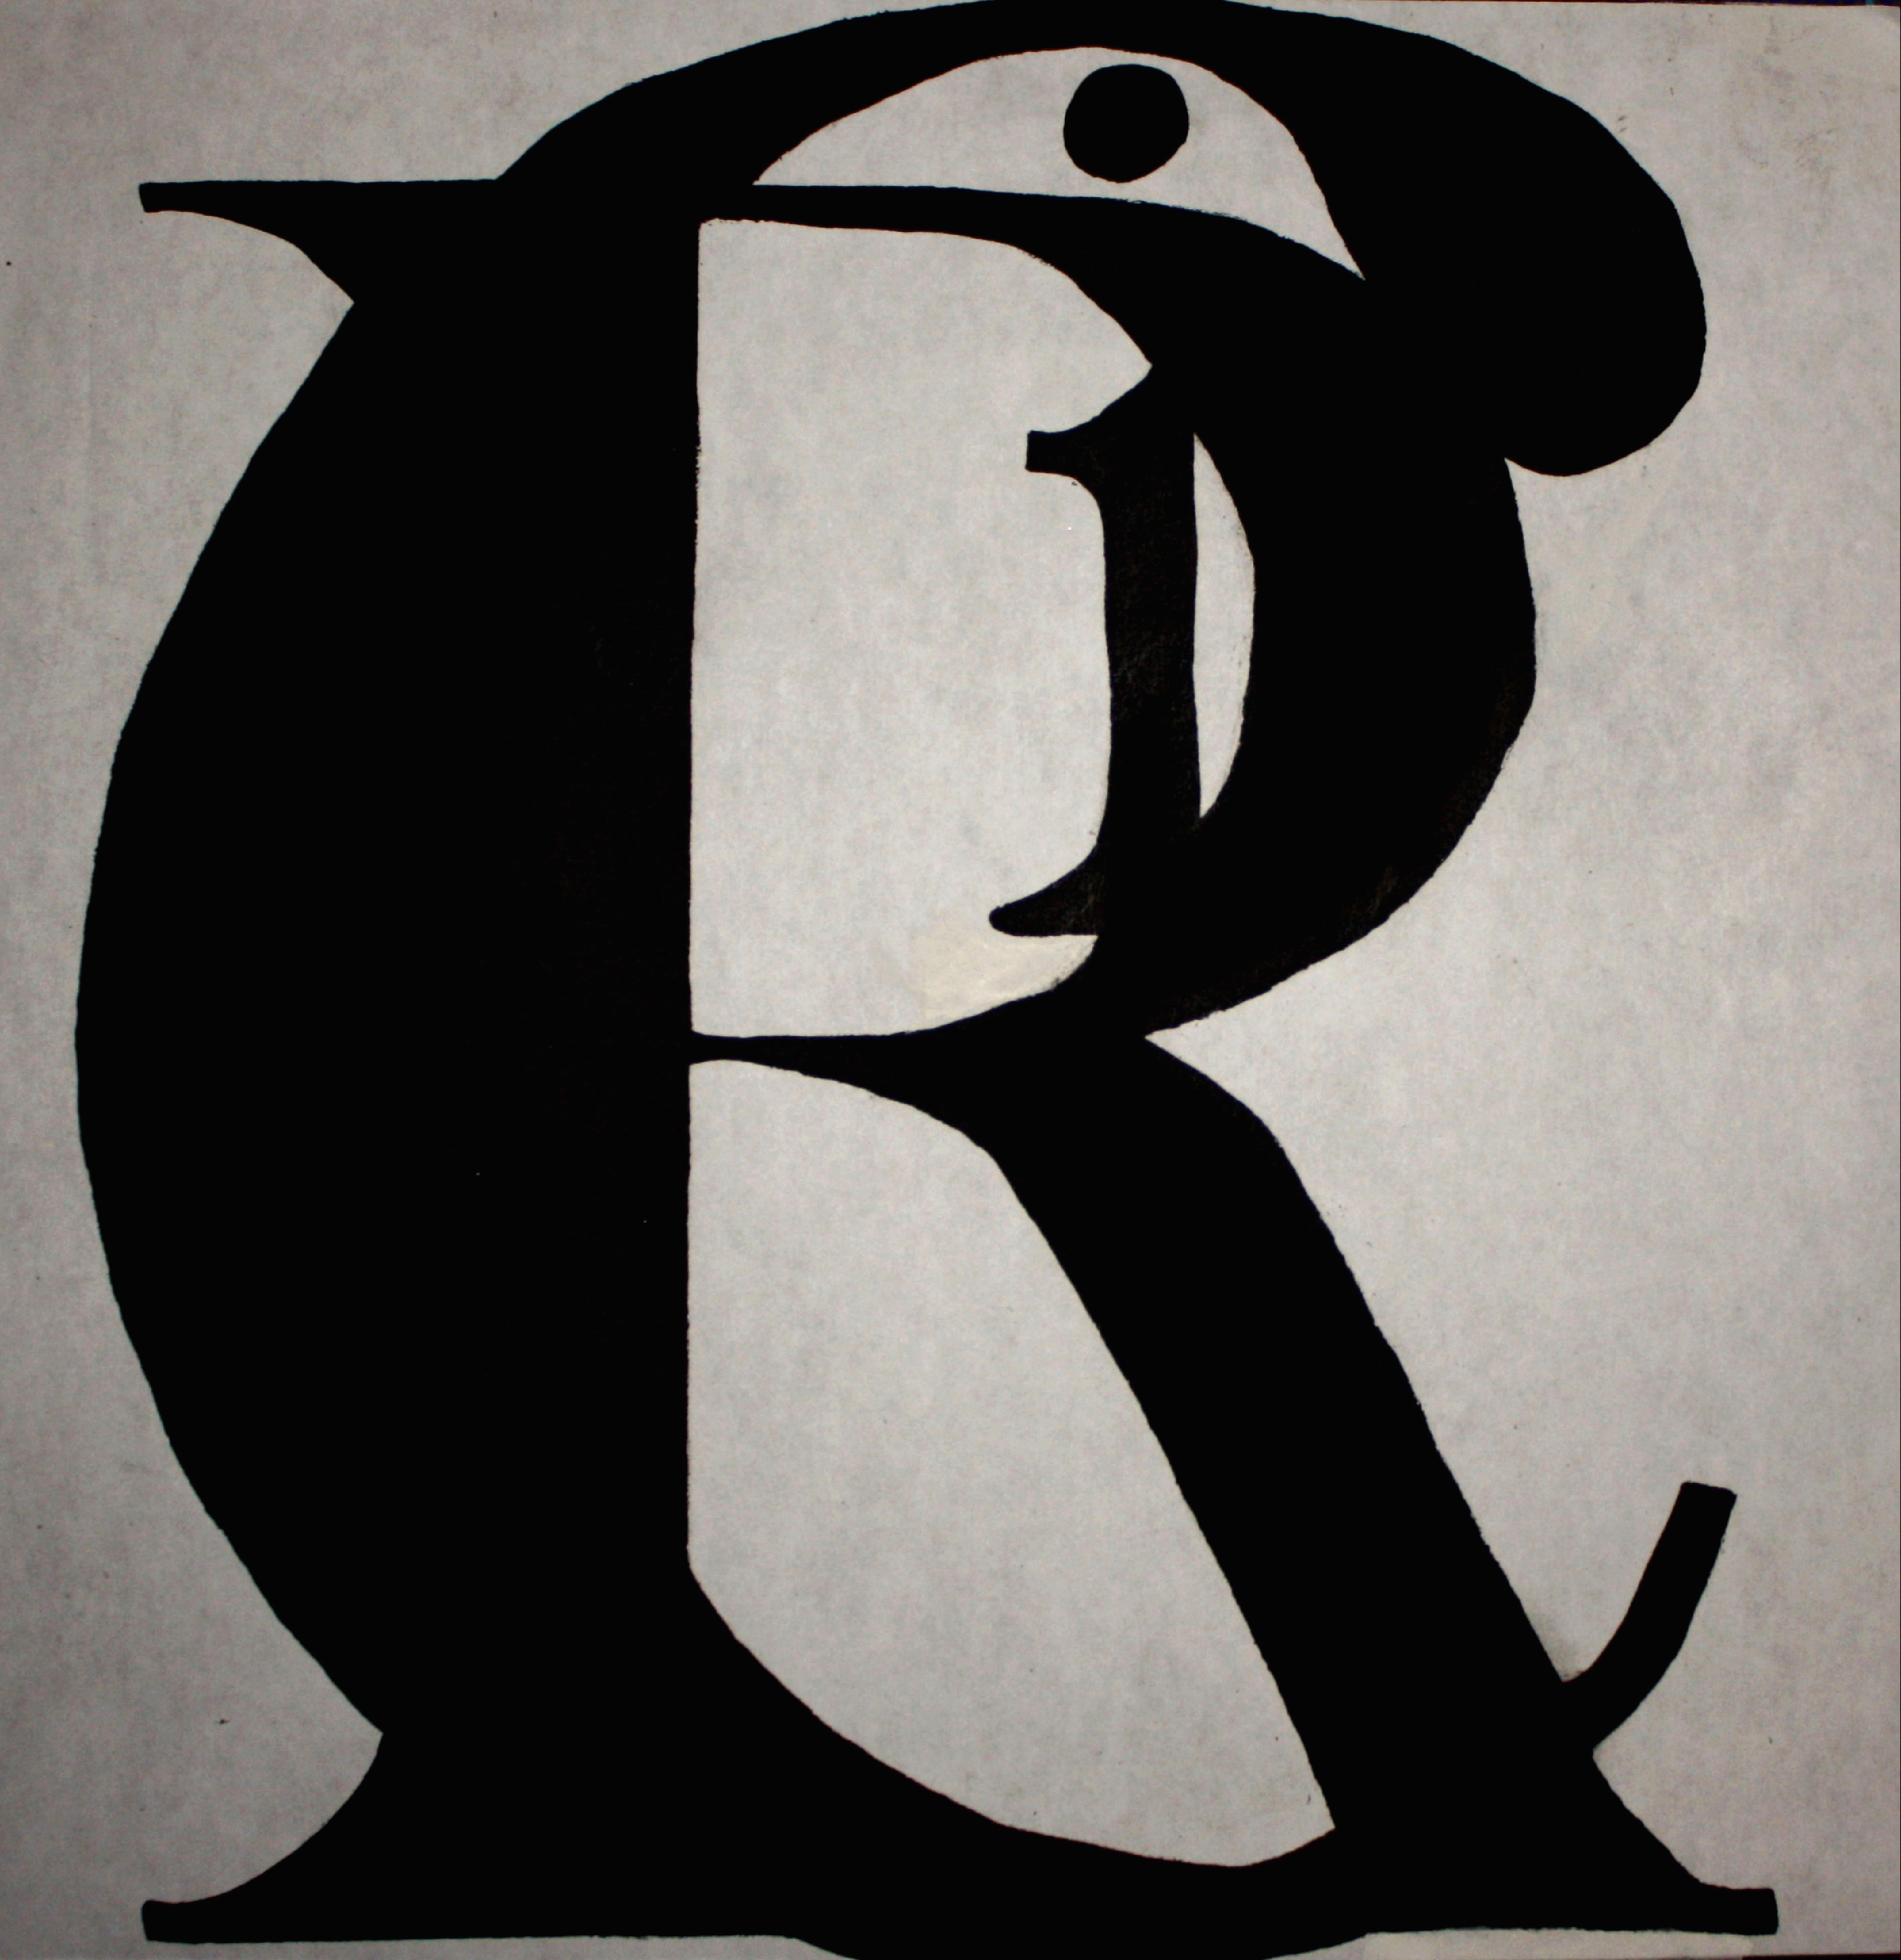 Letter R Art Abstract letter art_3by